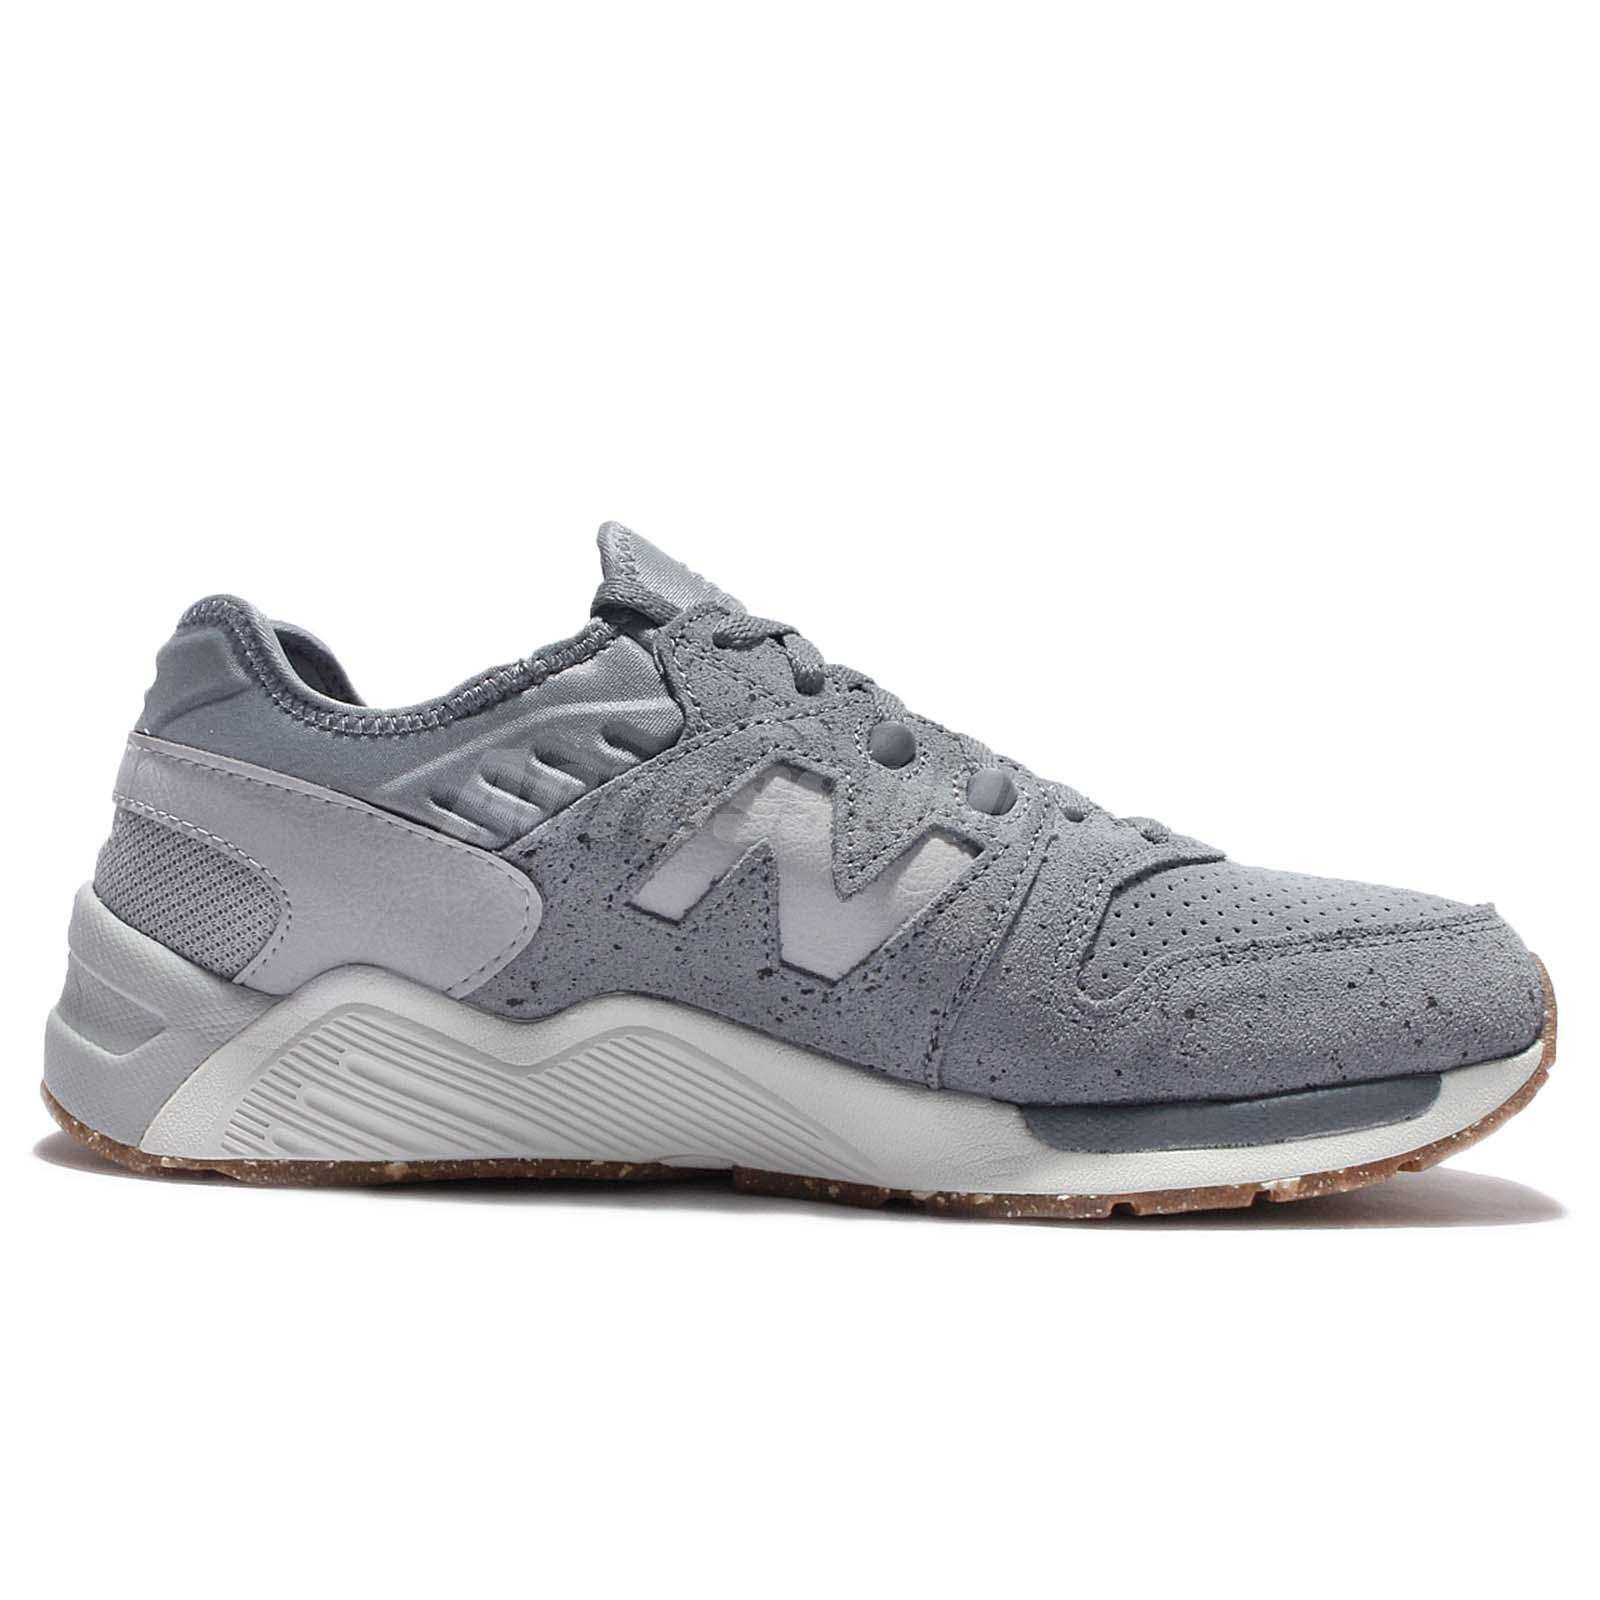 f04e7723e44 New Balance ML009PB D Speckle Suede Grey Silver White Men Running ...